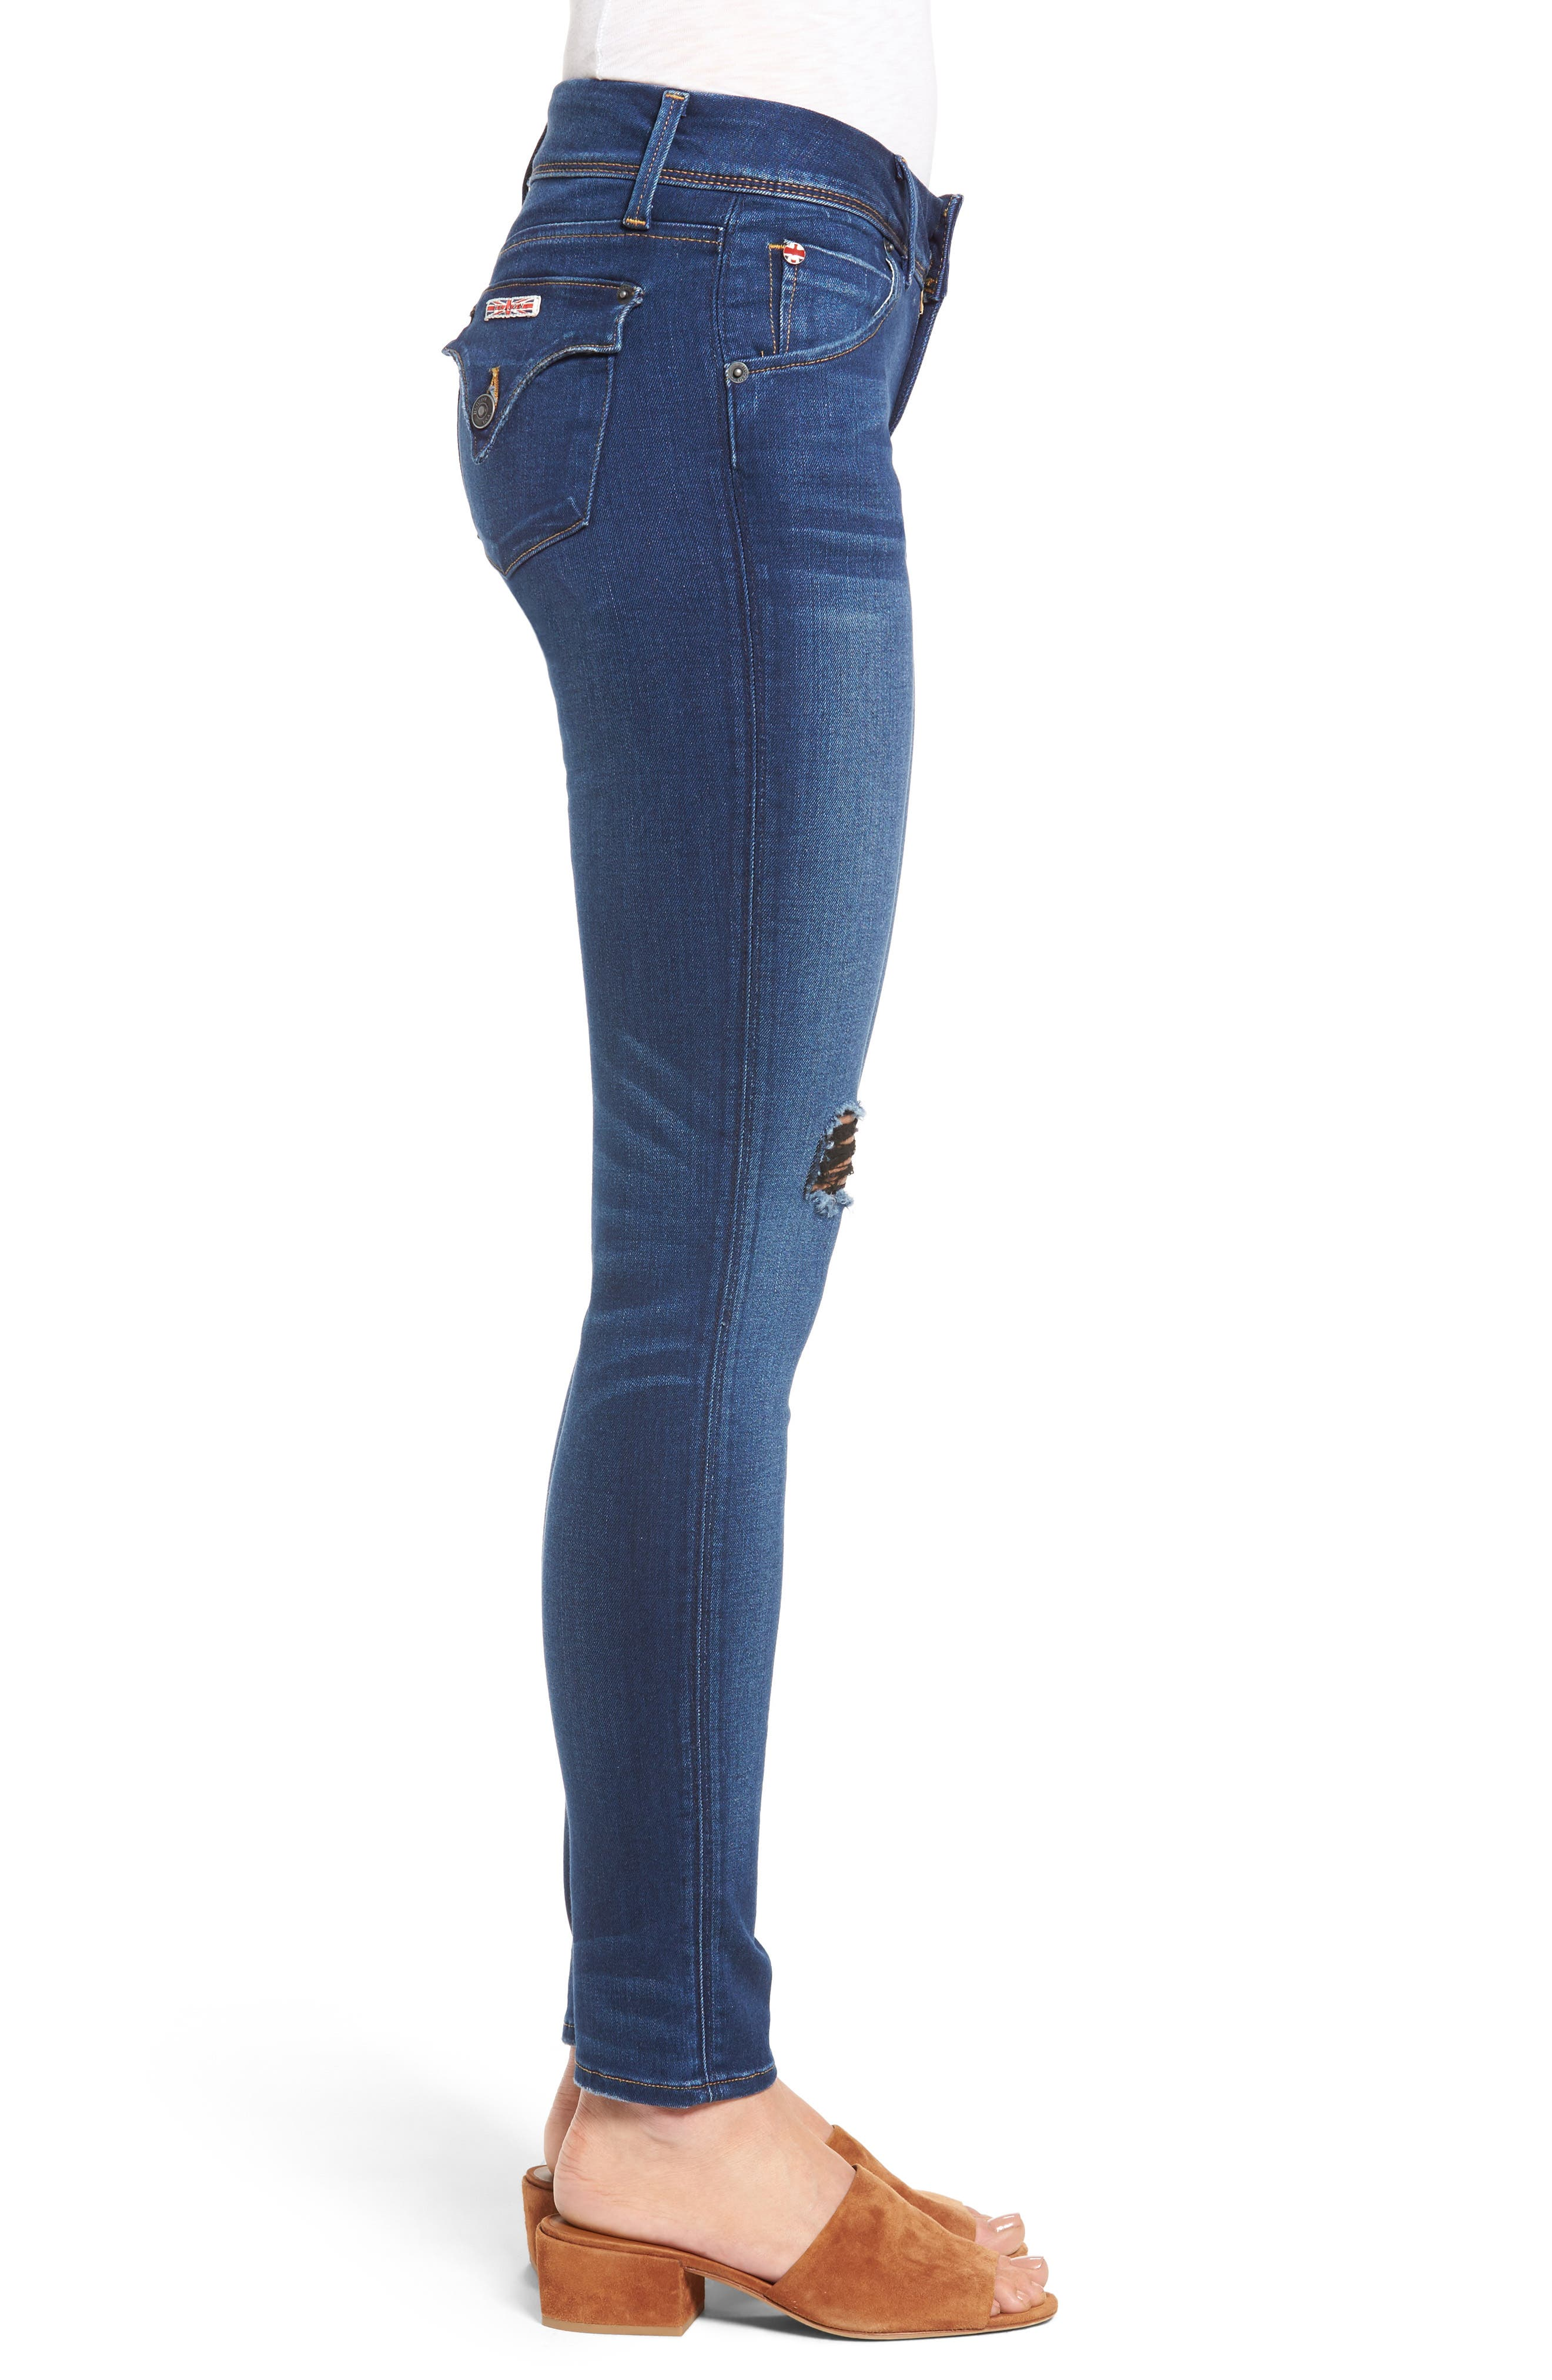 Alternate Image 3  - Hudson Jeans 'Elysian - Collin' Mid Rise Skinny Jeans (Authentic)